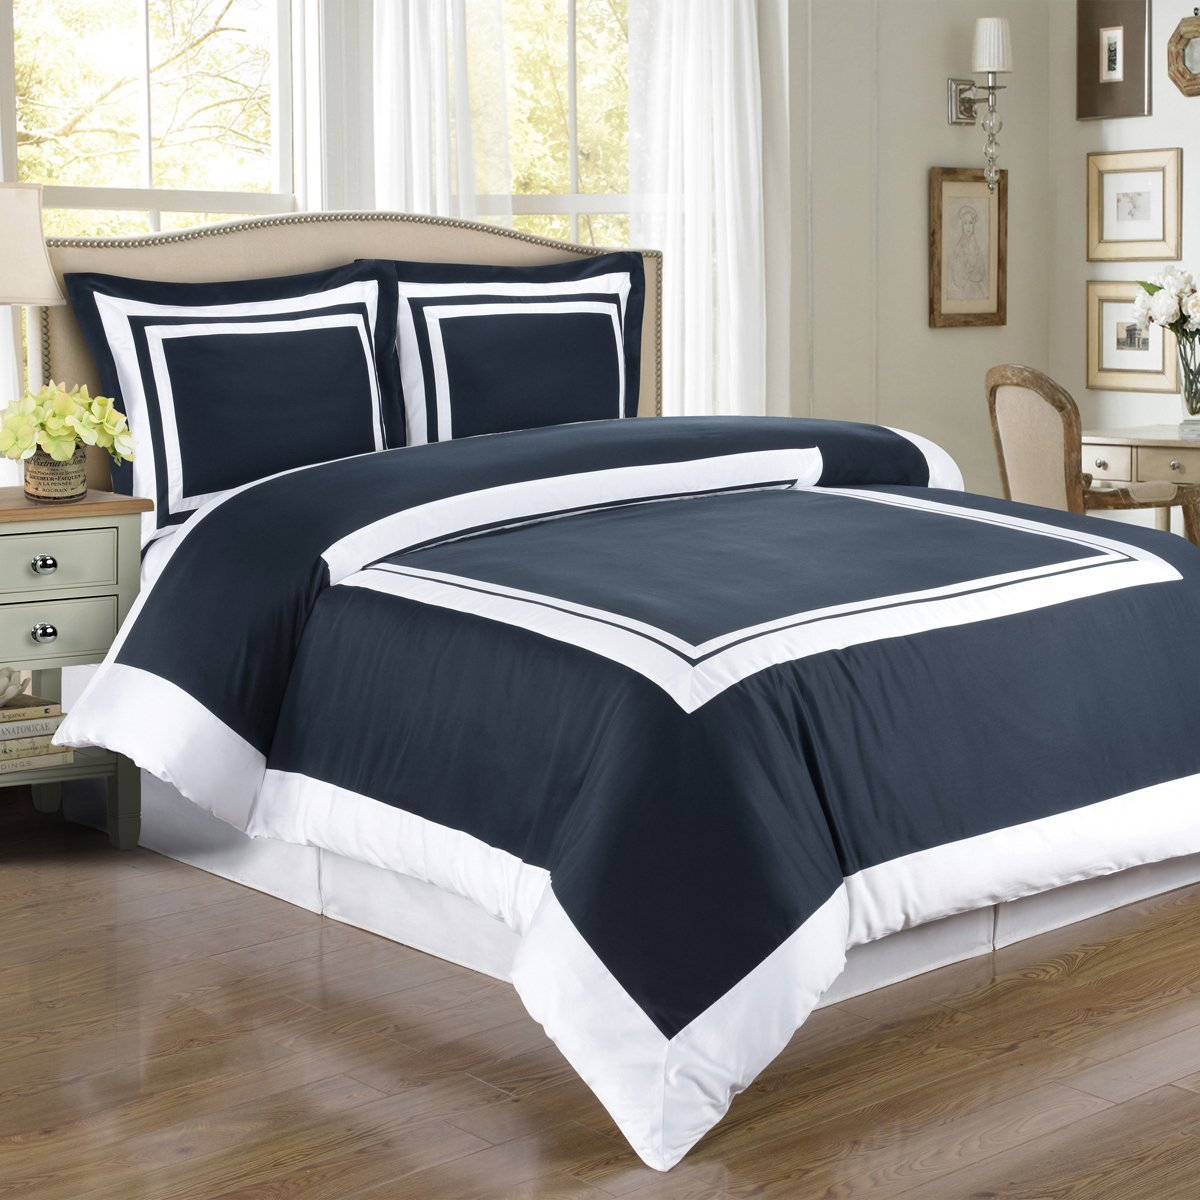 Navy and White Hotel 8-piece Queen Bed-in-a-Bag 100 % Cotton 300 Thread Count by Royal Hotel by Royal Hotel